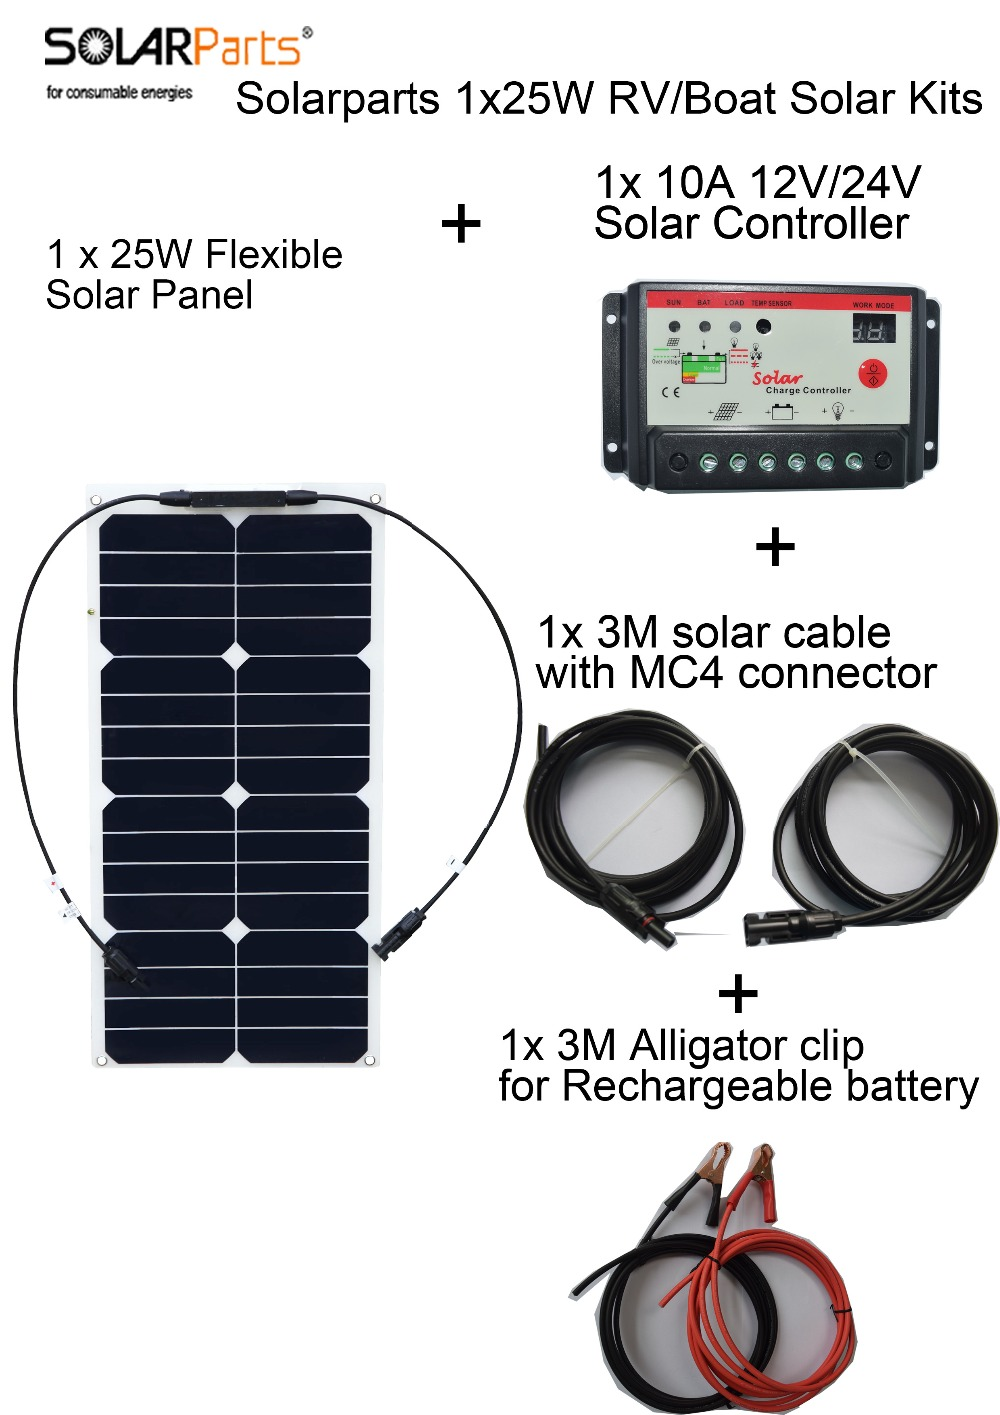 Solarparts  25w flexible solar panel system solar cell controller cable for yacht/RV/light/12v battery solar energy generation